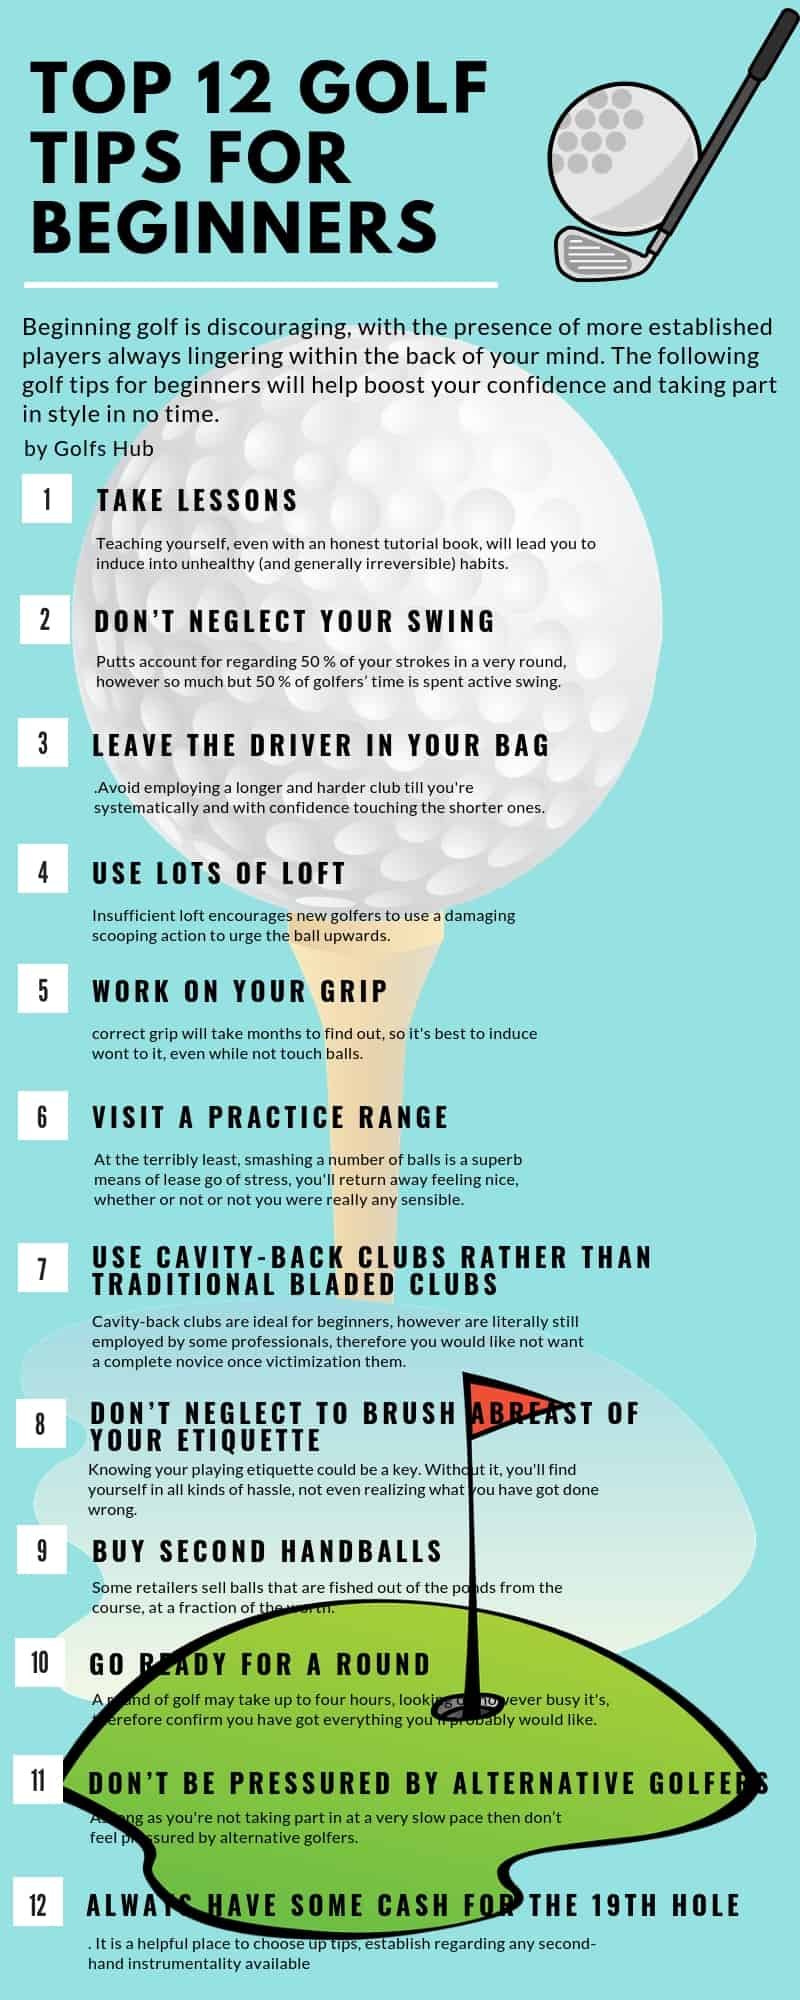 Top 12 Golf Tips for Beginners